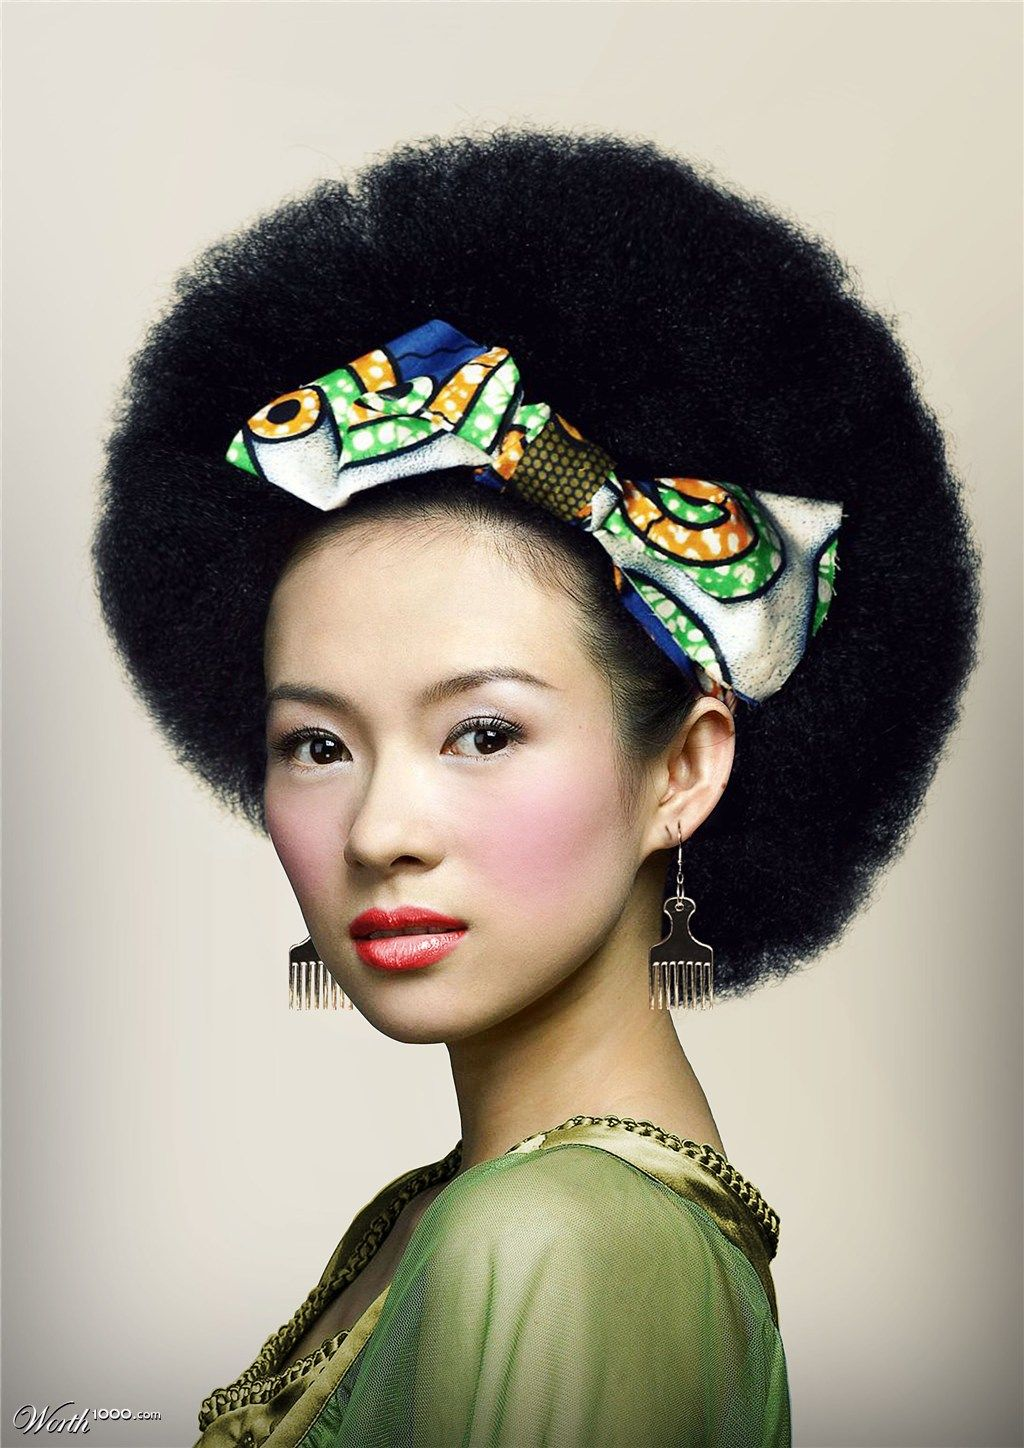 Ziyi Zhang Oriental Afro Hair - Wow!!! Afro hair is trending across cultures!